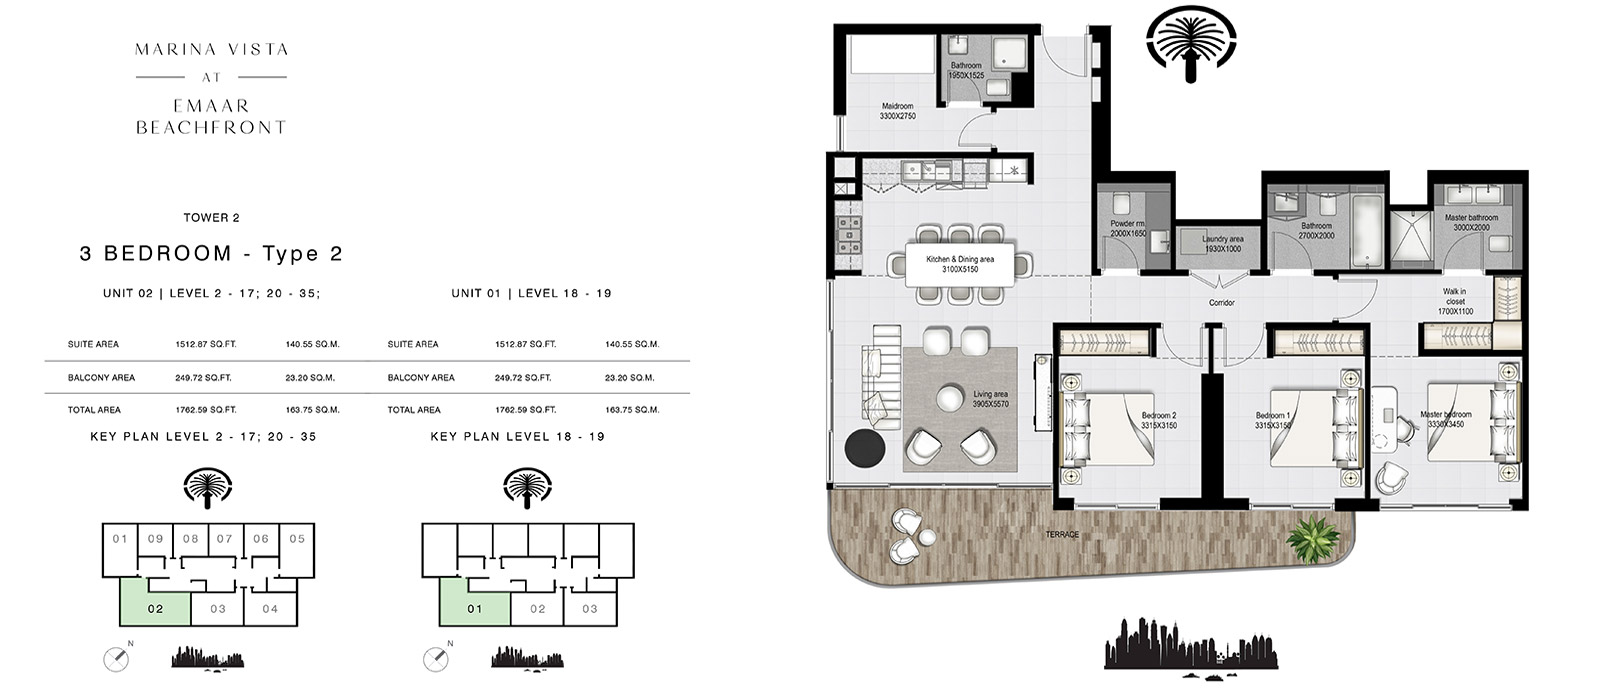 3 Bedroom Tower 2, Type 4, Size 1762.59 sq.ft.